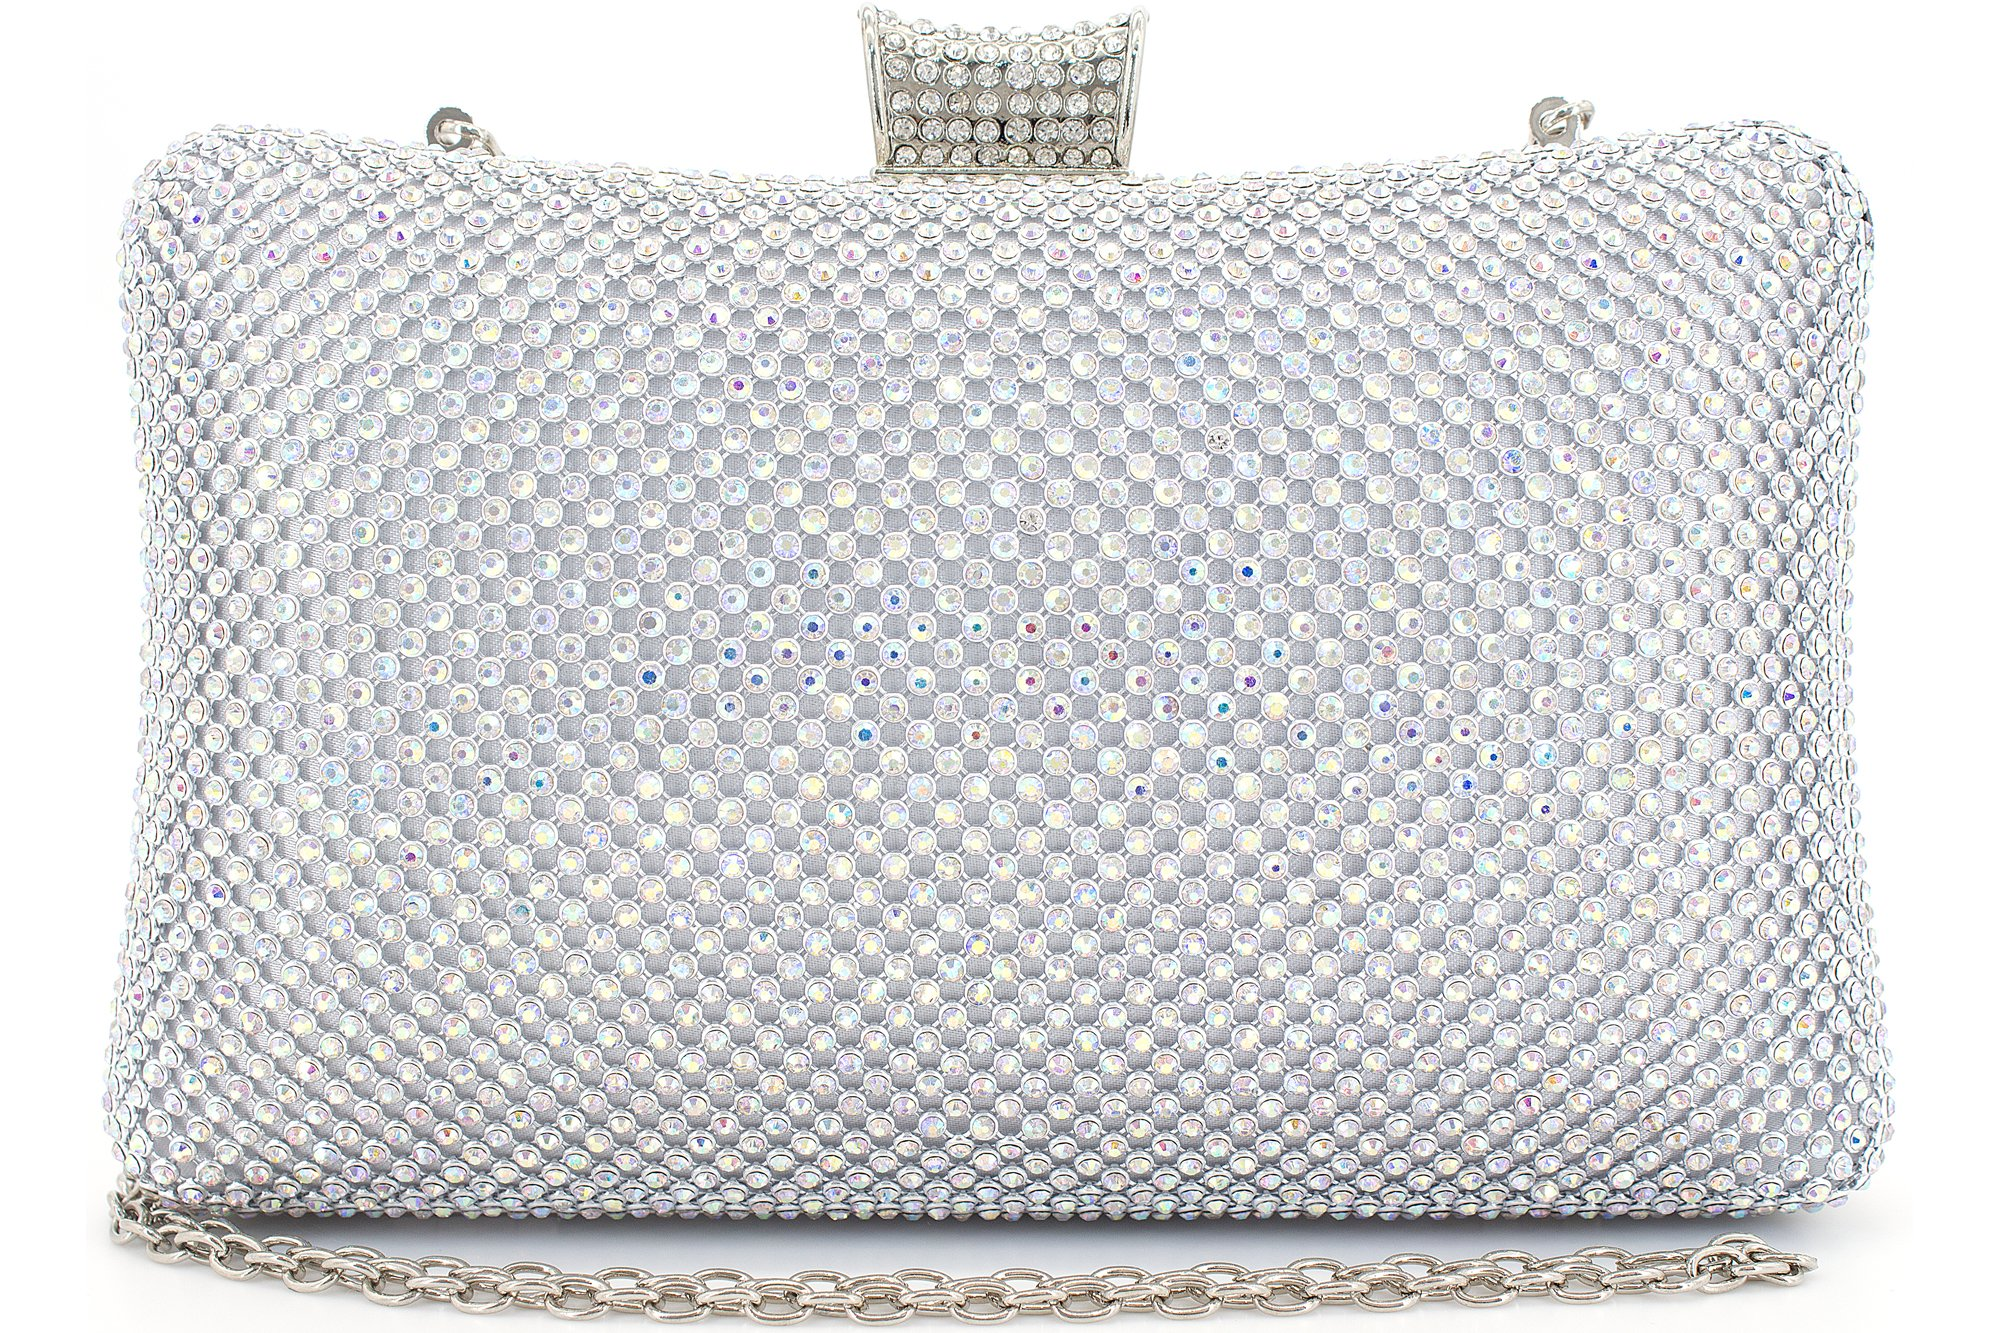 Rhinestone Crystal Clutch Purse Large Clutches Women Evening Bags for Wedding Party AB Silver